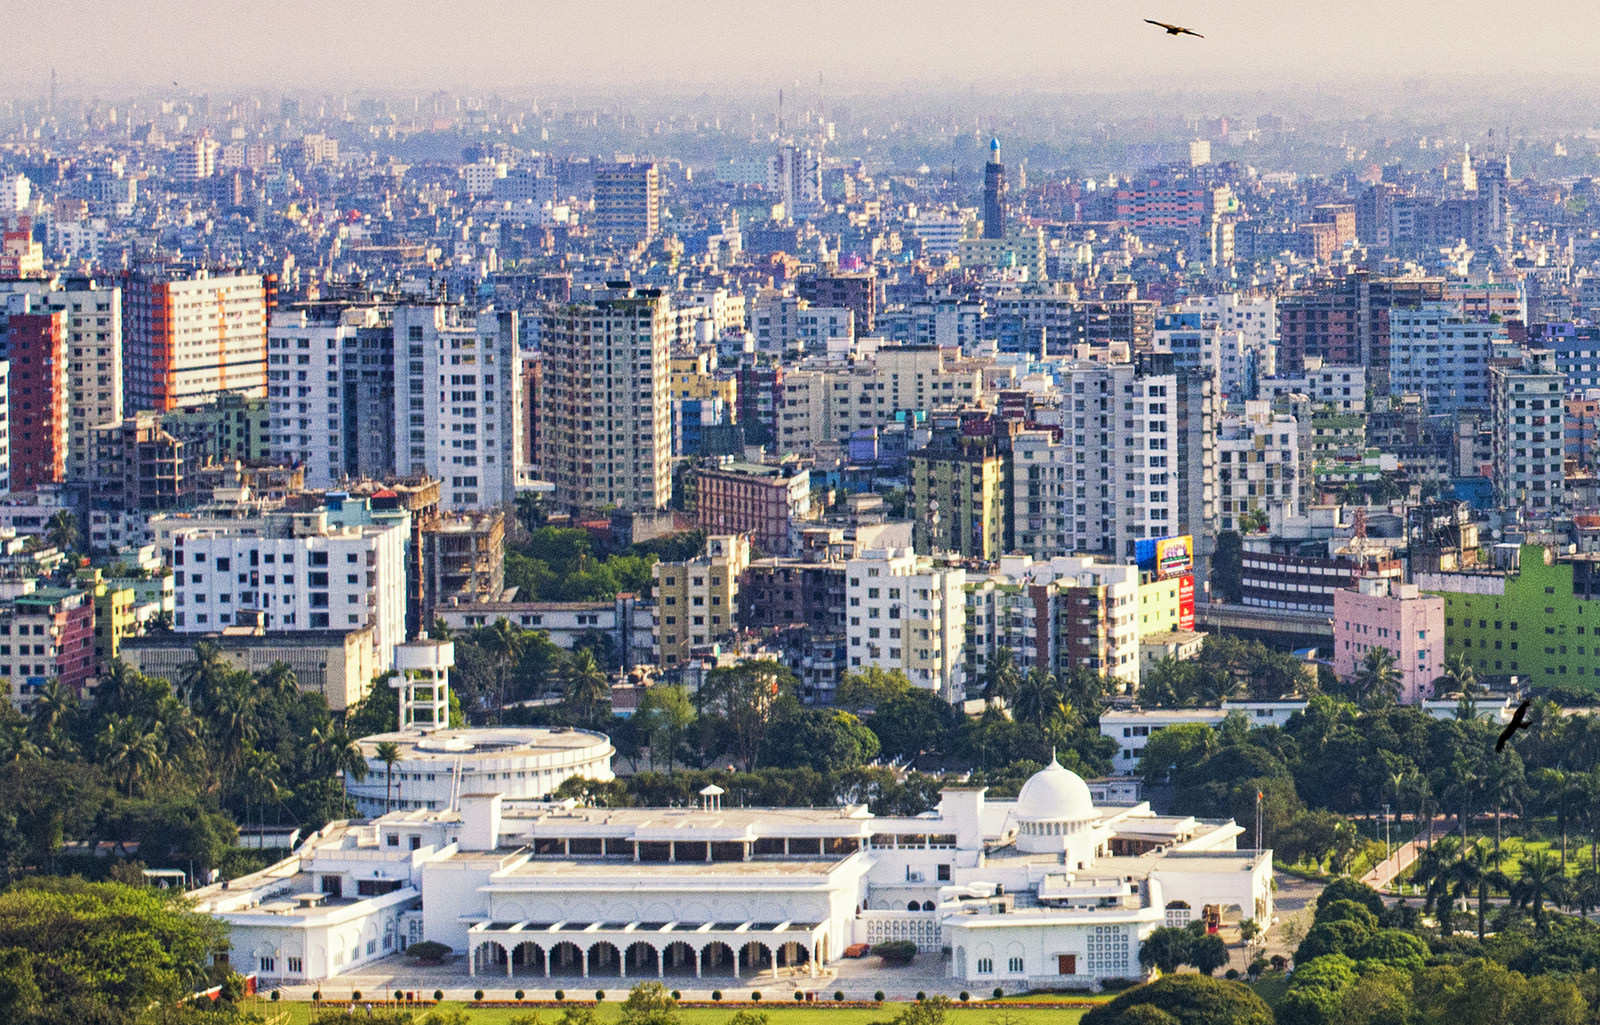 Bangladesh is on the Way to be a Developed Nation